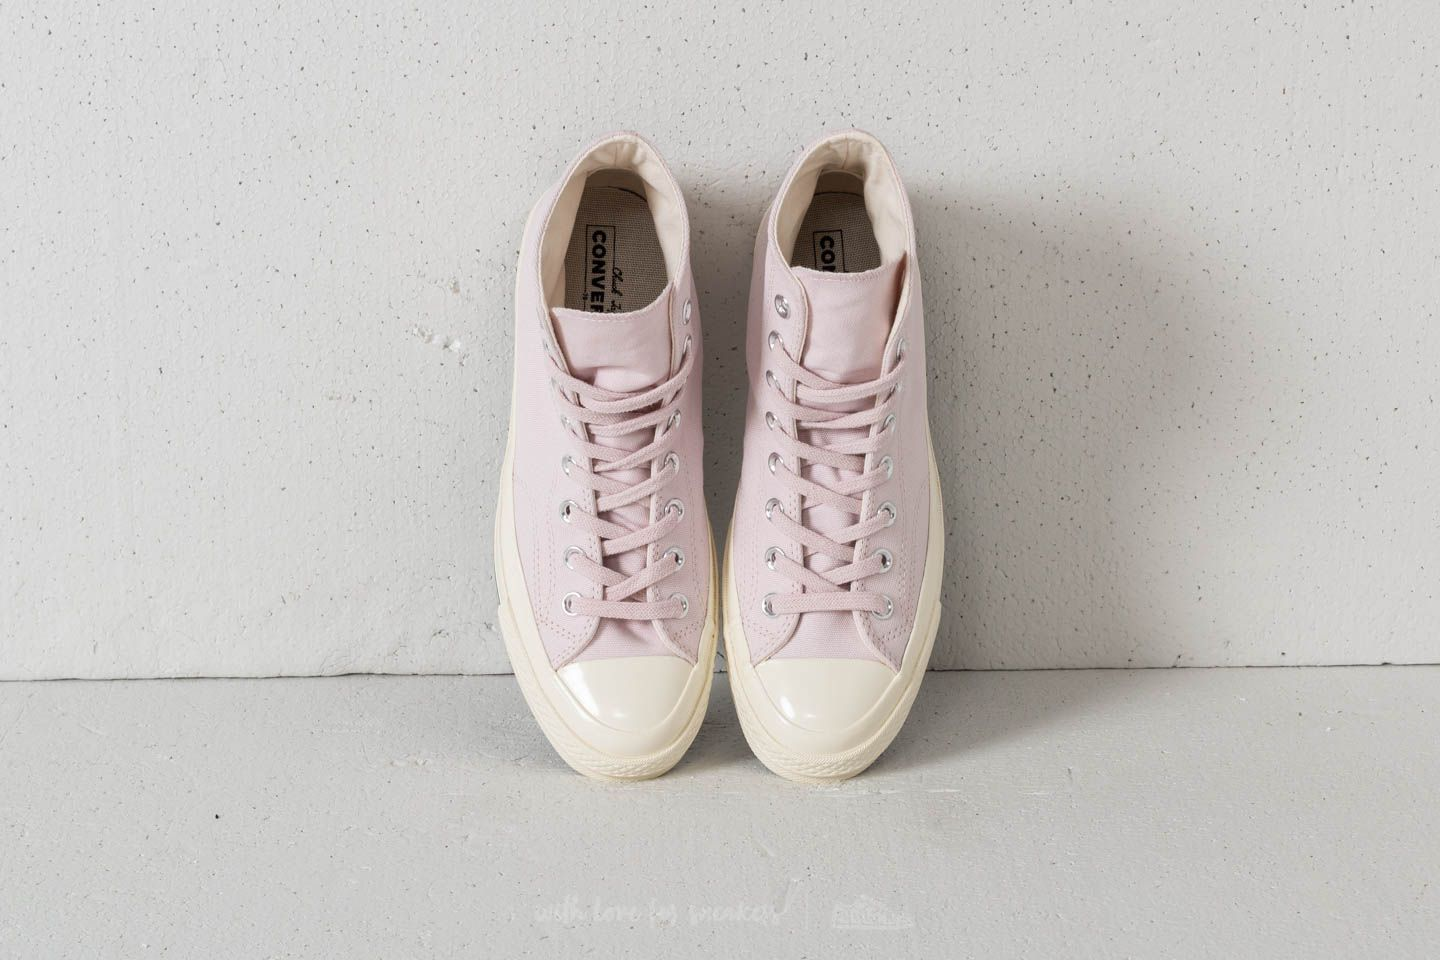 Converse Chuck Taylor All Star 70 Hi Barely Rose Gym Red